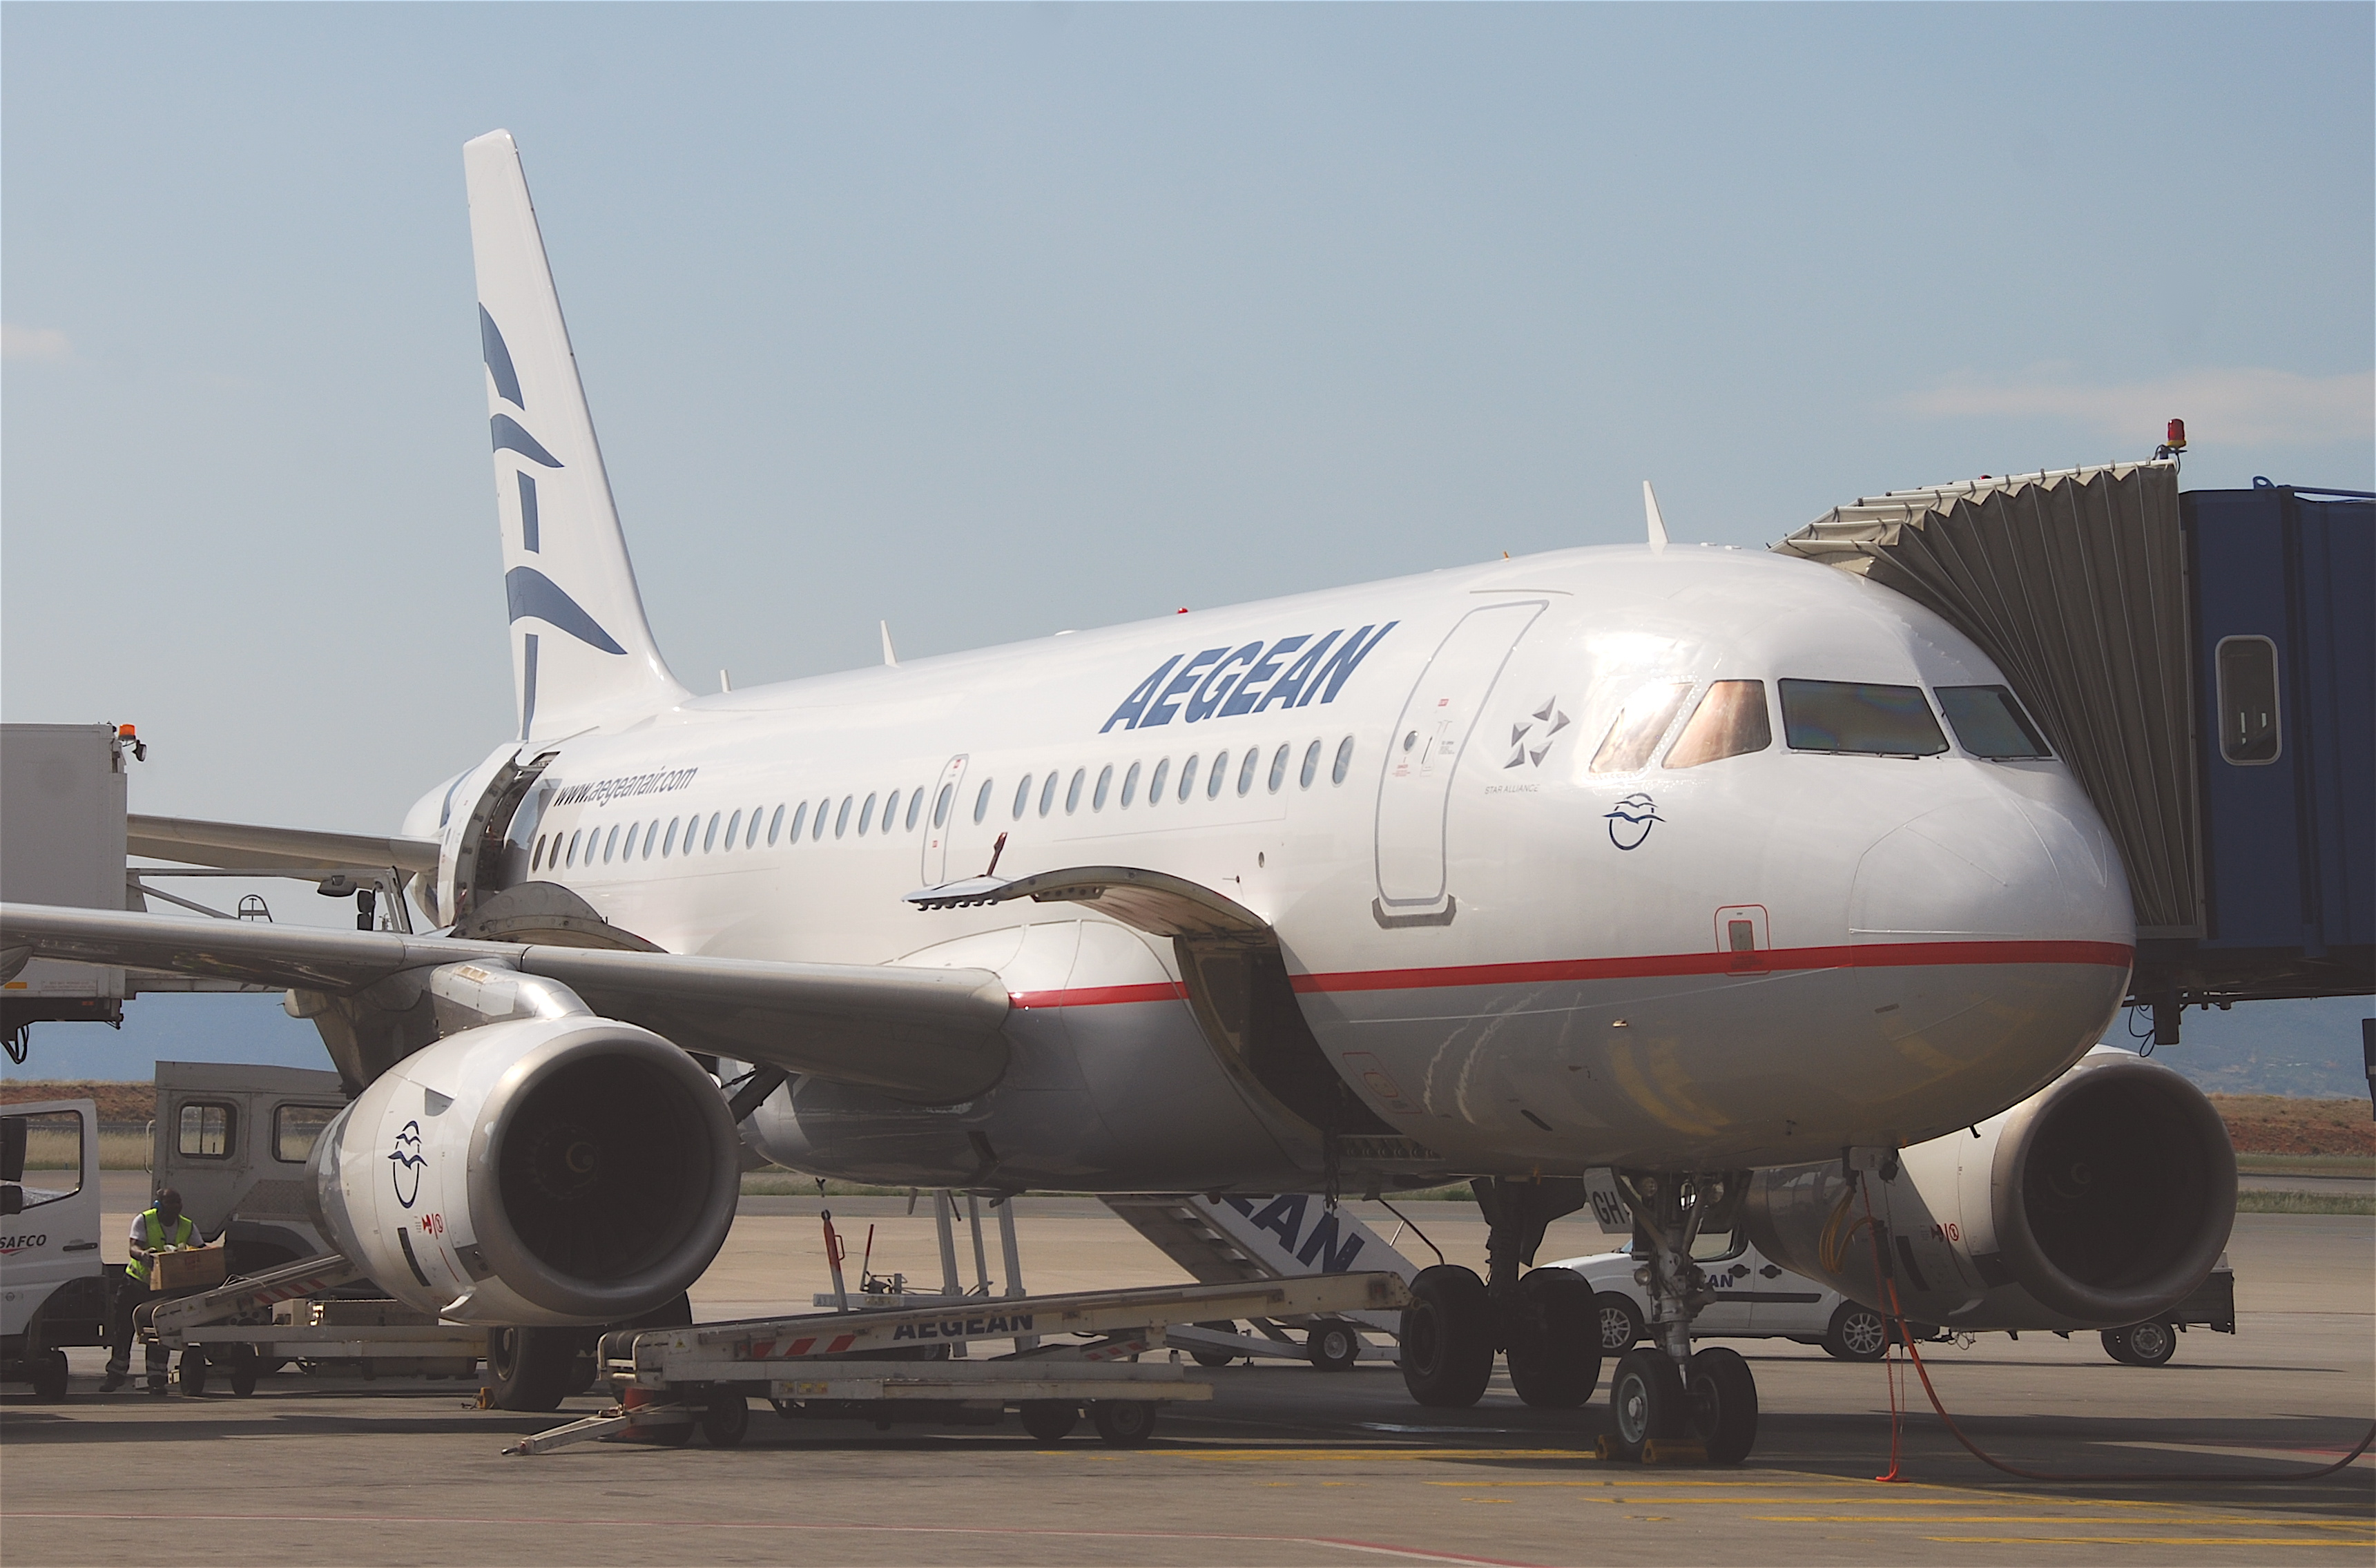 An Aegean Airlines Skybus Plane